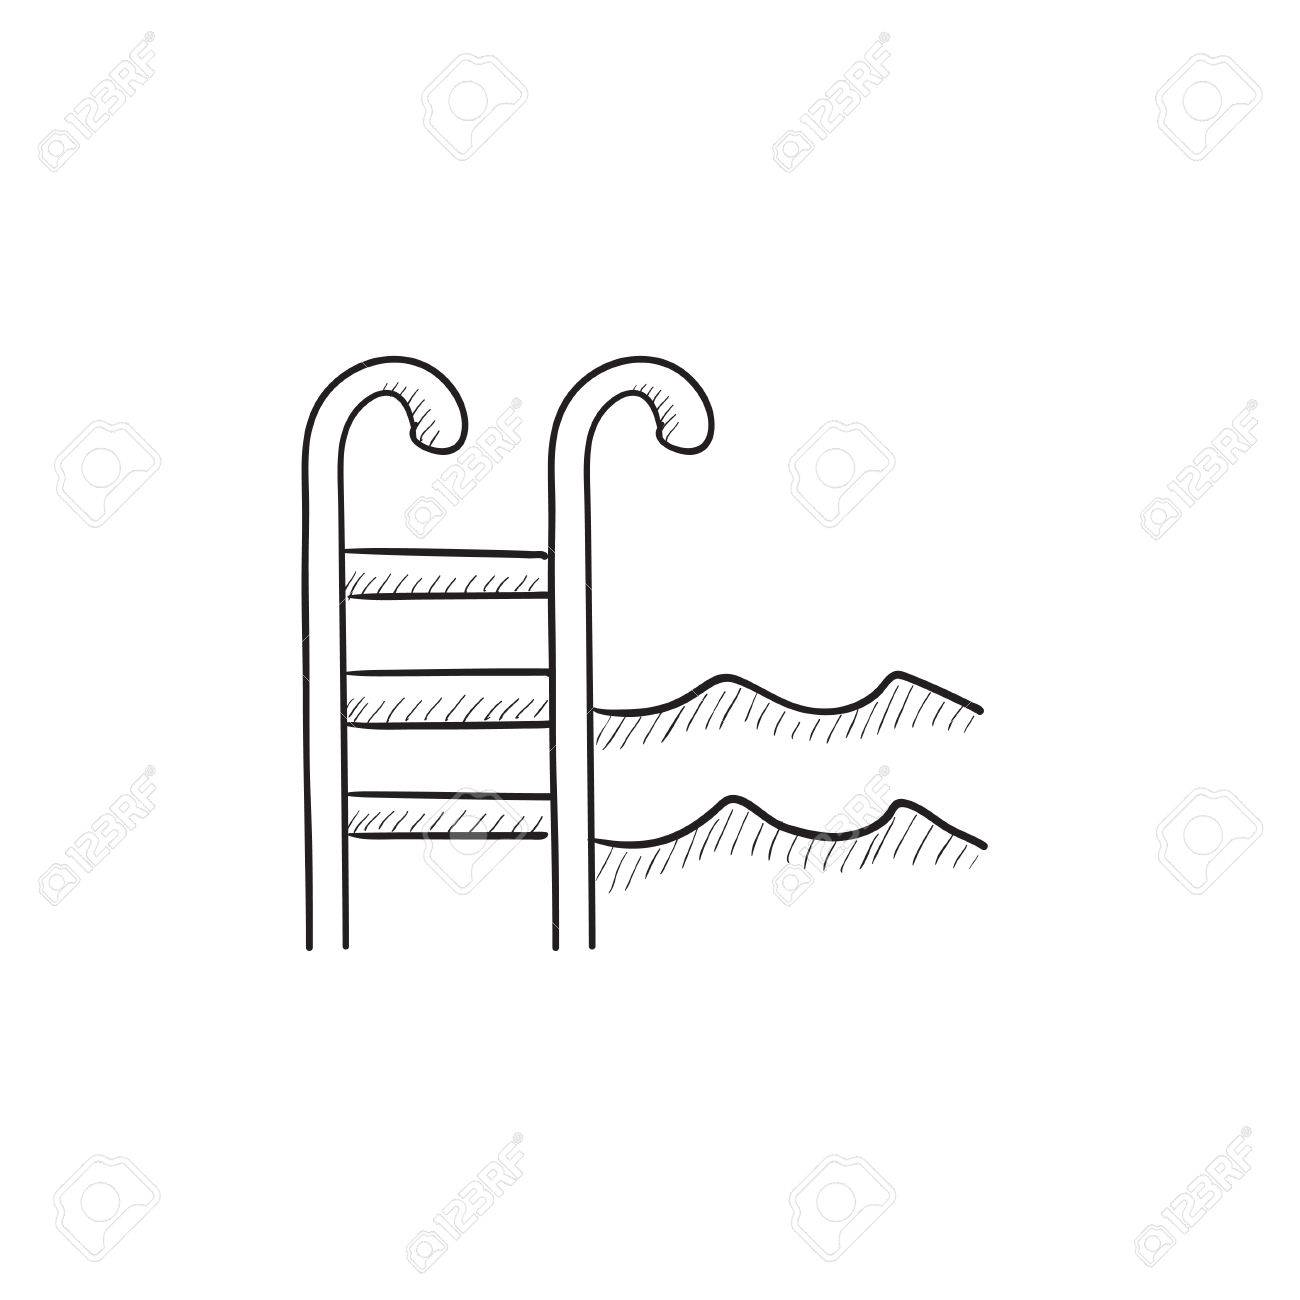 swimming pool with ladder vector sketch icon isolated on background